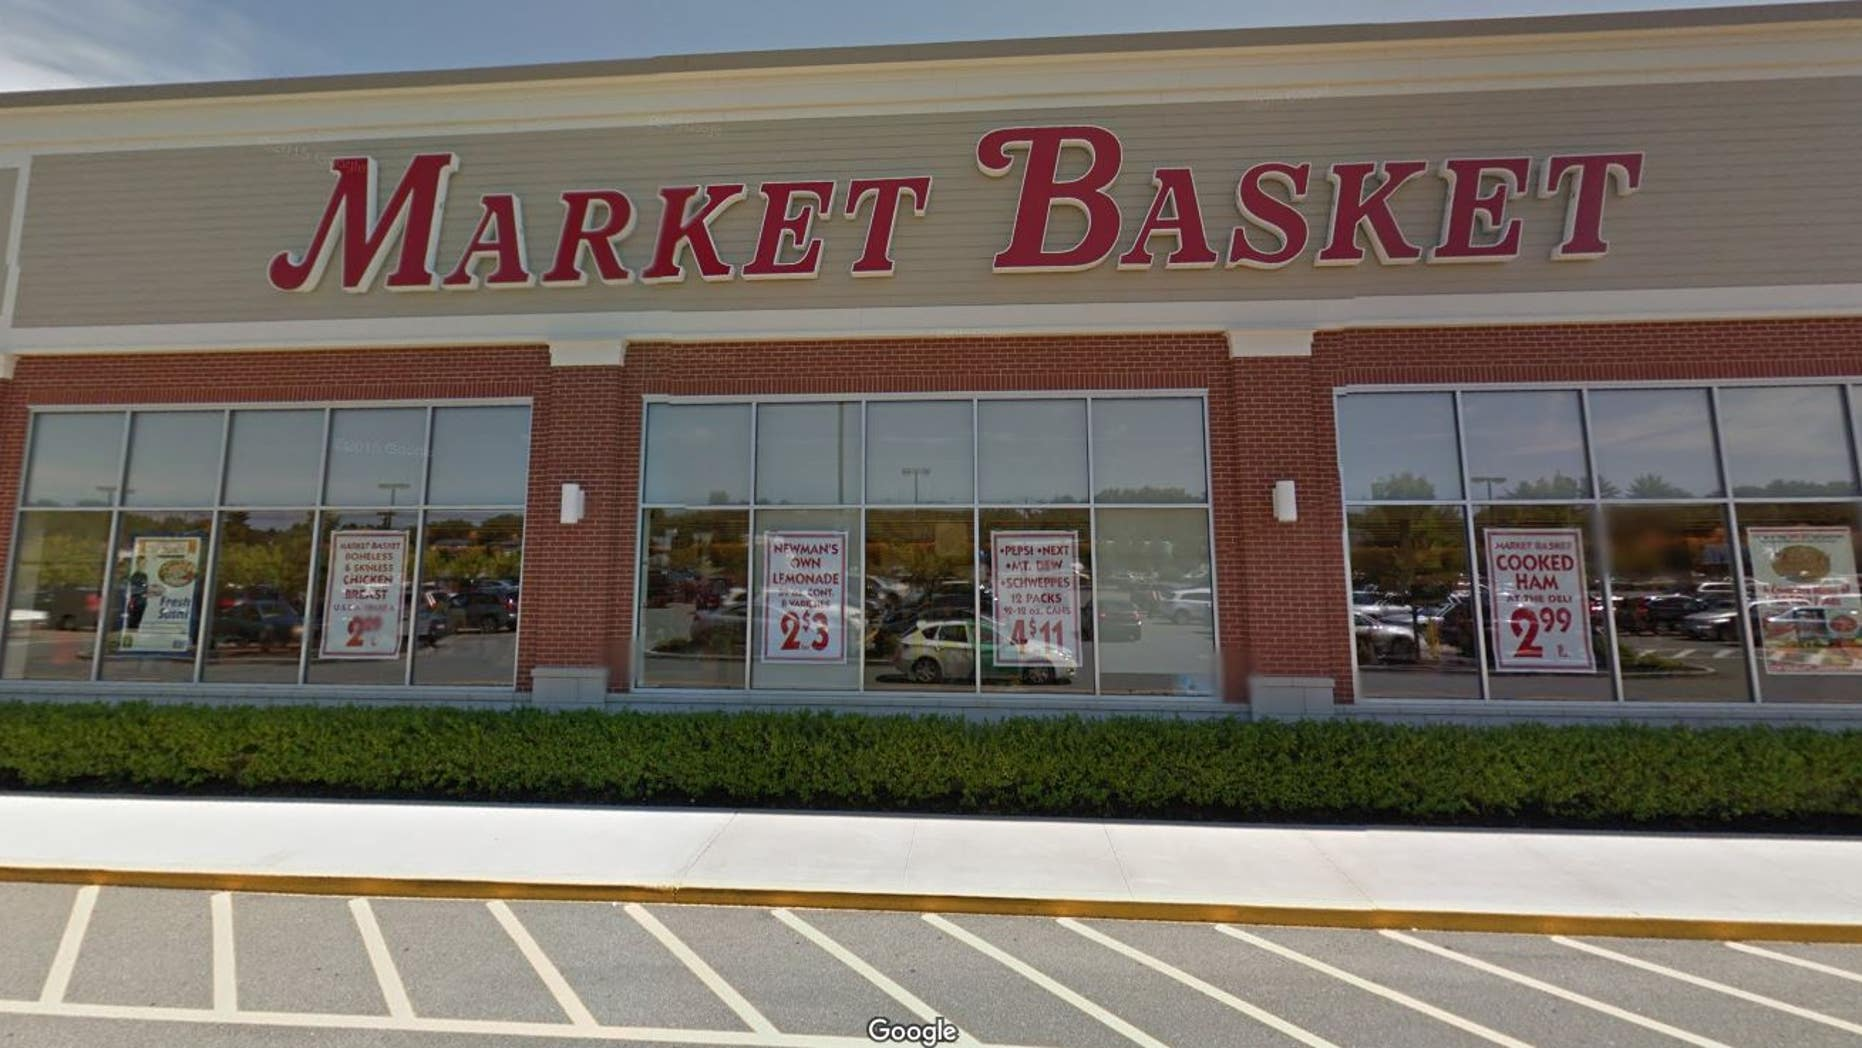 Market Basket claims they have no ghosts at their supermarket.